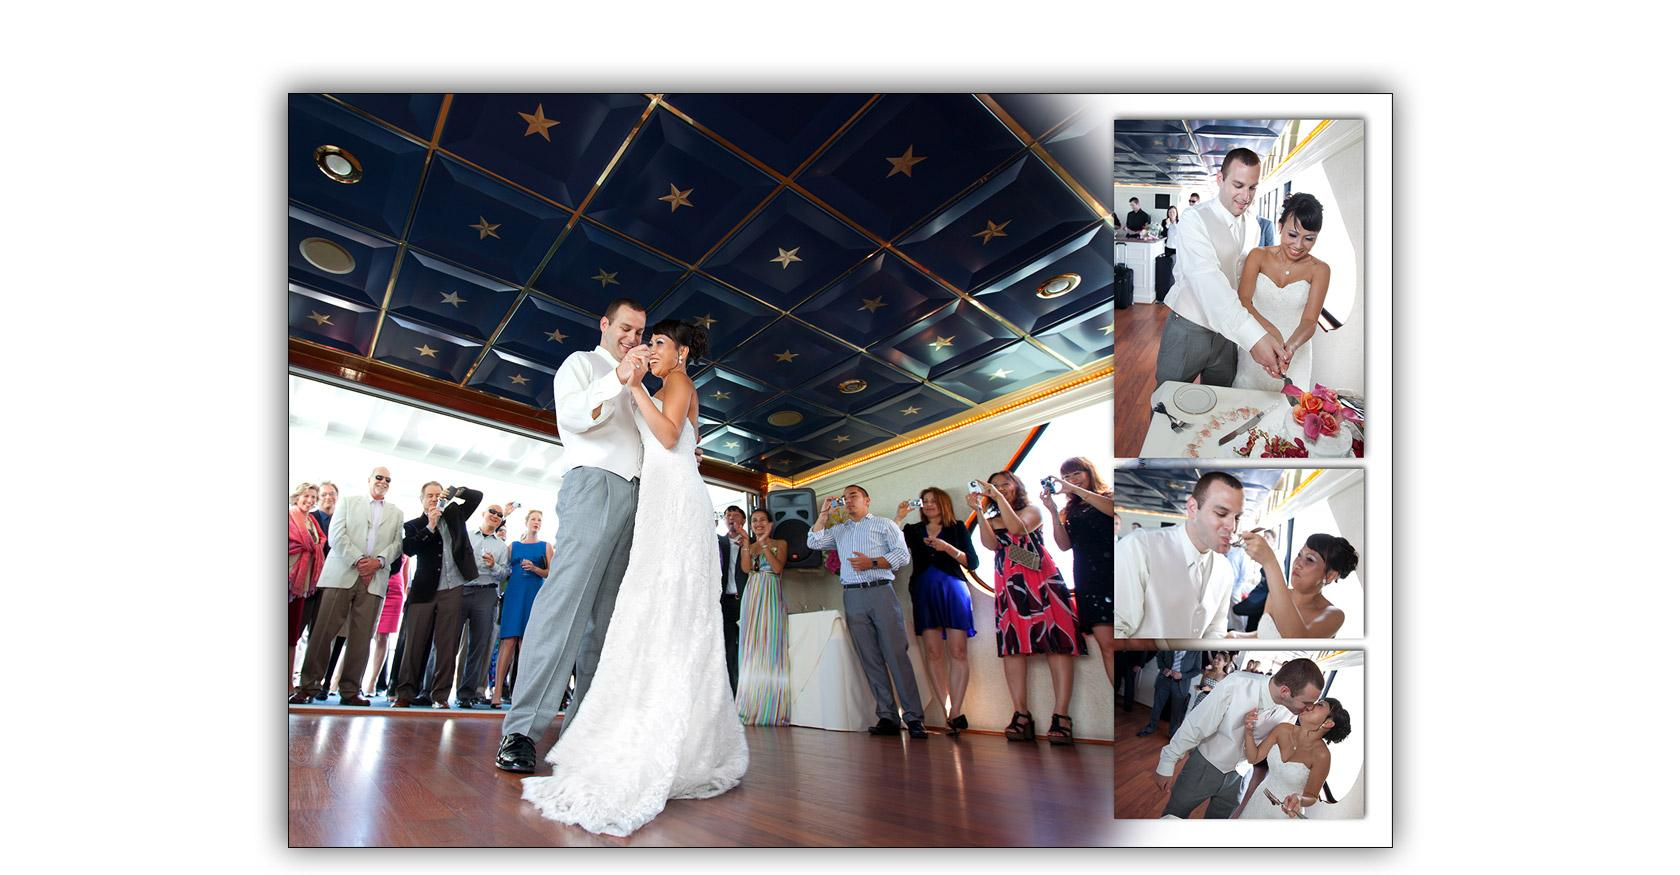 San Francisco Bay yacht boat wedding cruise Commodore Events Merlot photography album 10